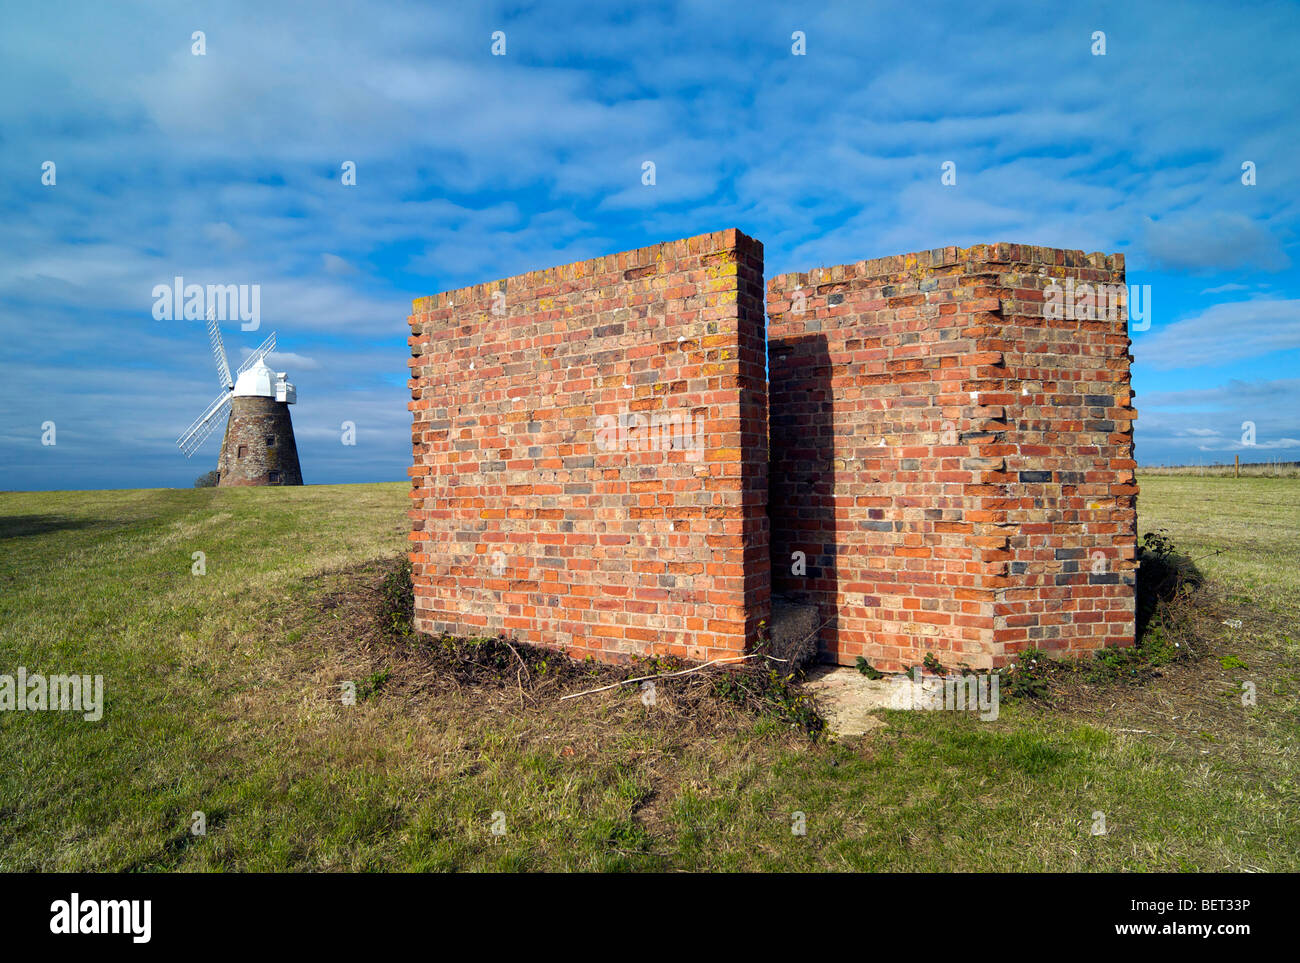 Remnants of WWII anti-aircraft installations next to Halnaker Windmill overlooking Chichester in Sussex UK - Stock Image